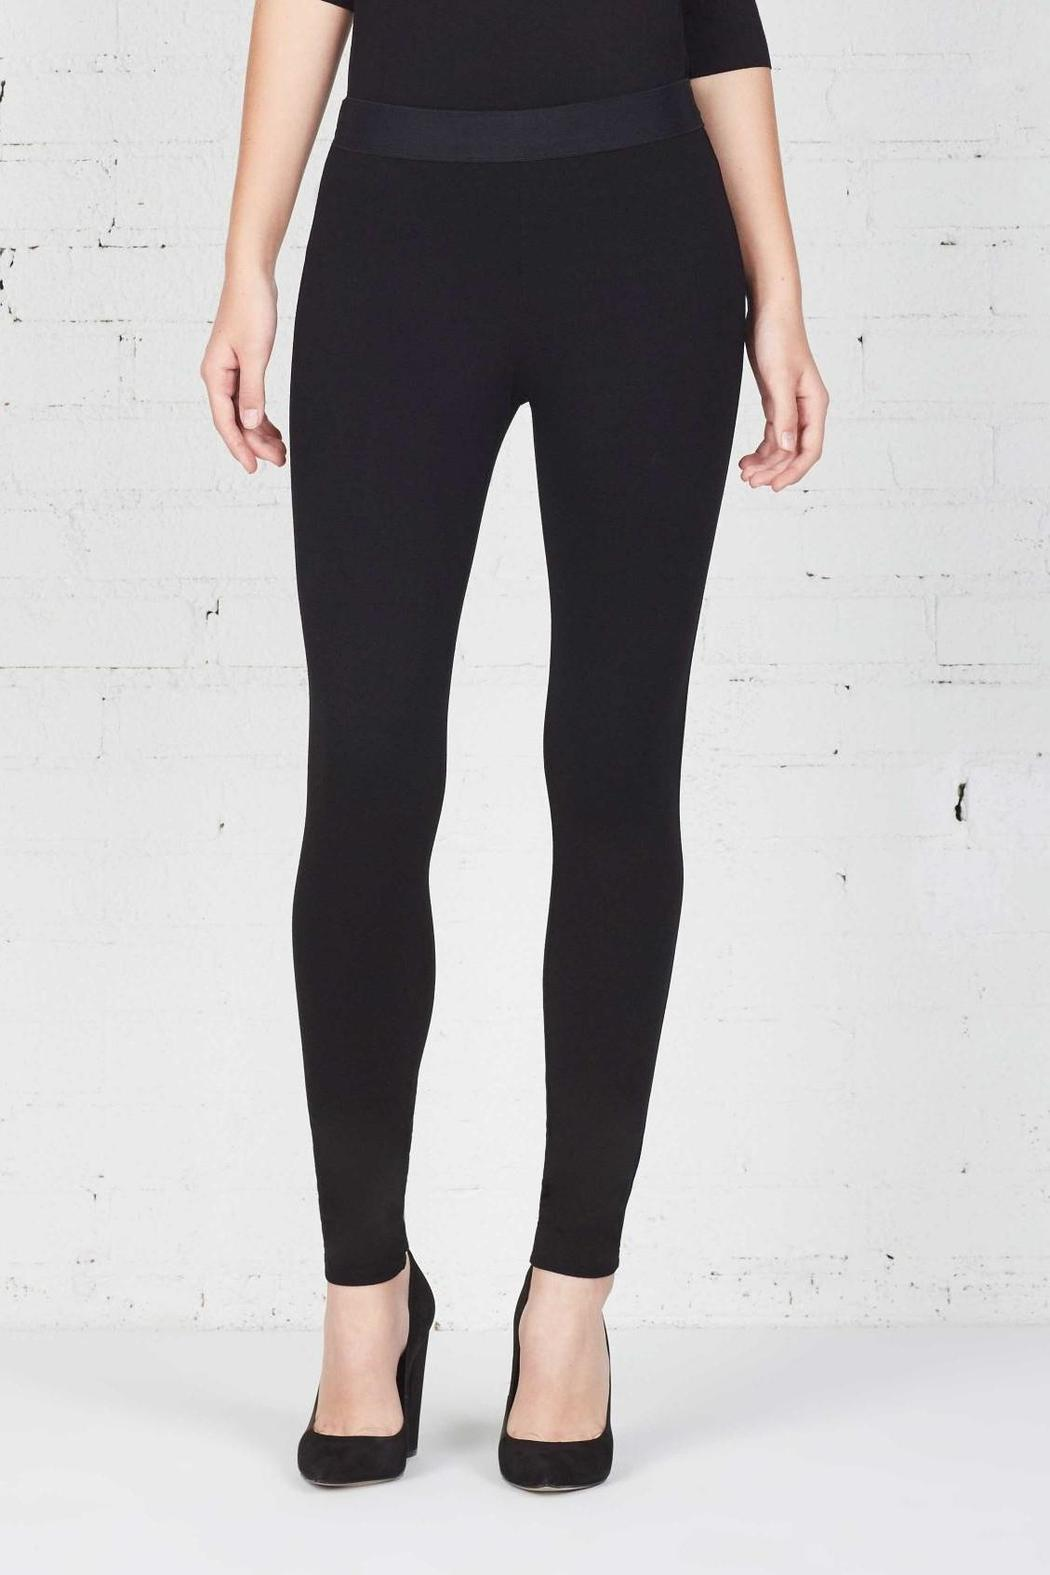 Bailey 44 Pfeifer Pant - Side Cropped Image